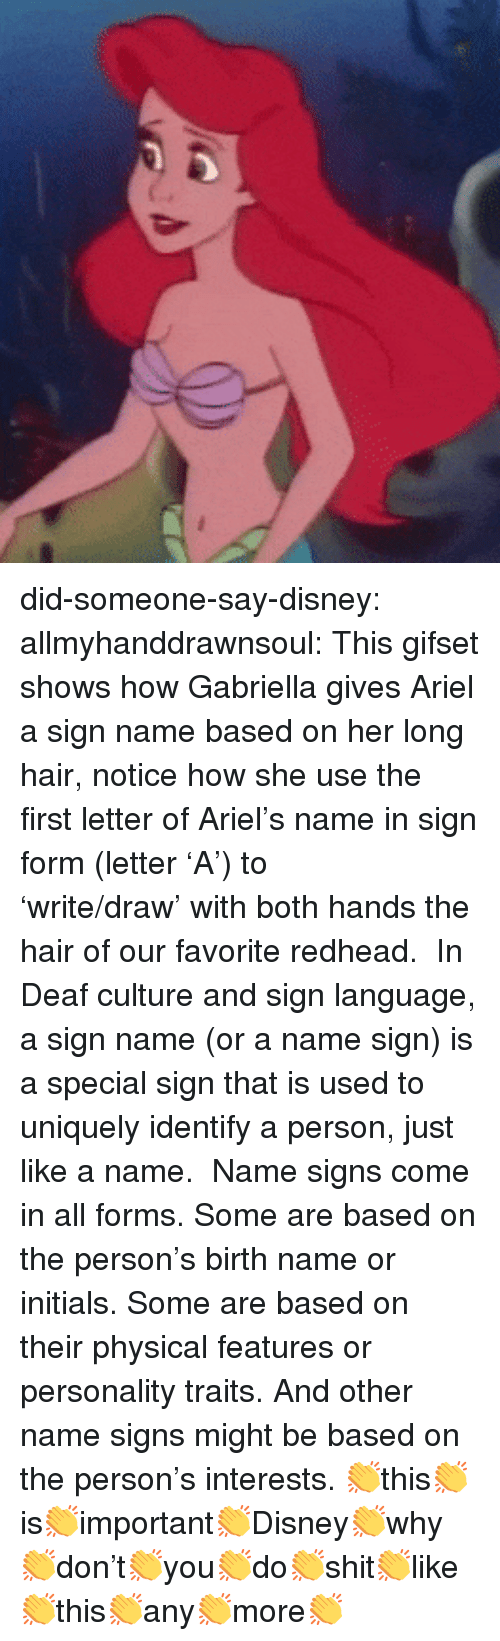 Ariel, Disney, and Tumblr: did-someone-say-disney: allmyhanddrawnsoul:    This gifset shows how Gabriella gives Ariel a sign name based on her long hair, notice how she use the first letter of Ariel's name in sign form (letter 'A') to 'write/draw'with both hands the hair of our favorite redhead.   In Deaf culture and sign language, a sign name (or a name sign) is a special sign that is used to uniquely identify a person, just like a name.   Name signs come in all forms. Some are based on the person's birth name or initials. Some are based on their physical featuresor personality traits. And other name signs might be based on the person's interests.     👏this👏is👏important👏Disney👏why👏don't👏you👏do👏shit👏like👏this👏any👏more👏